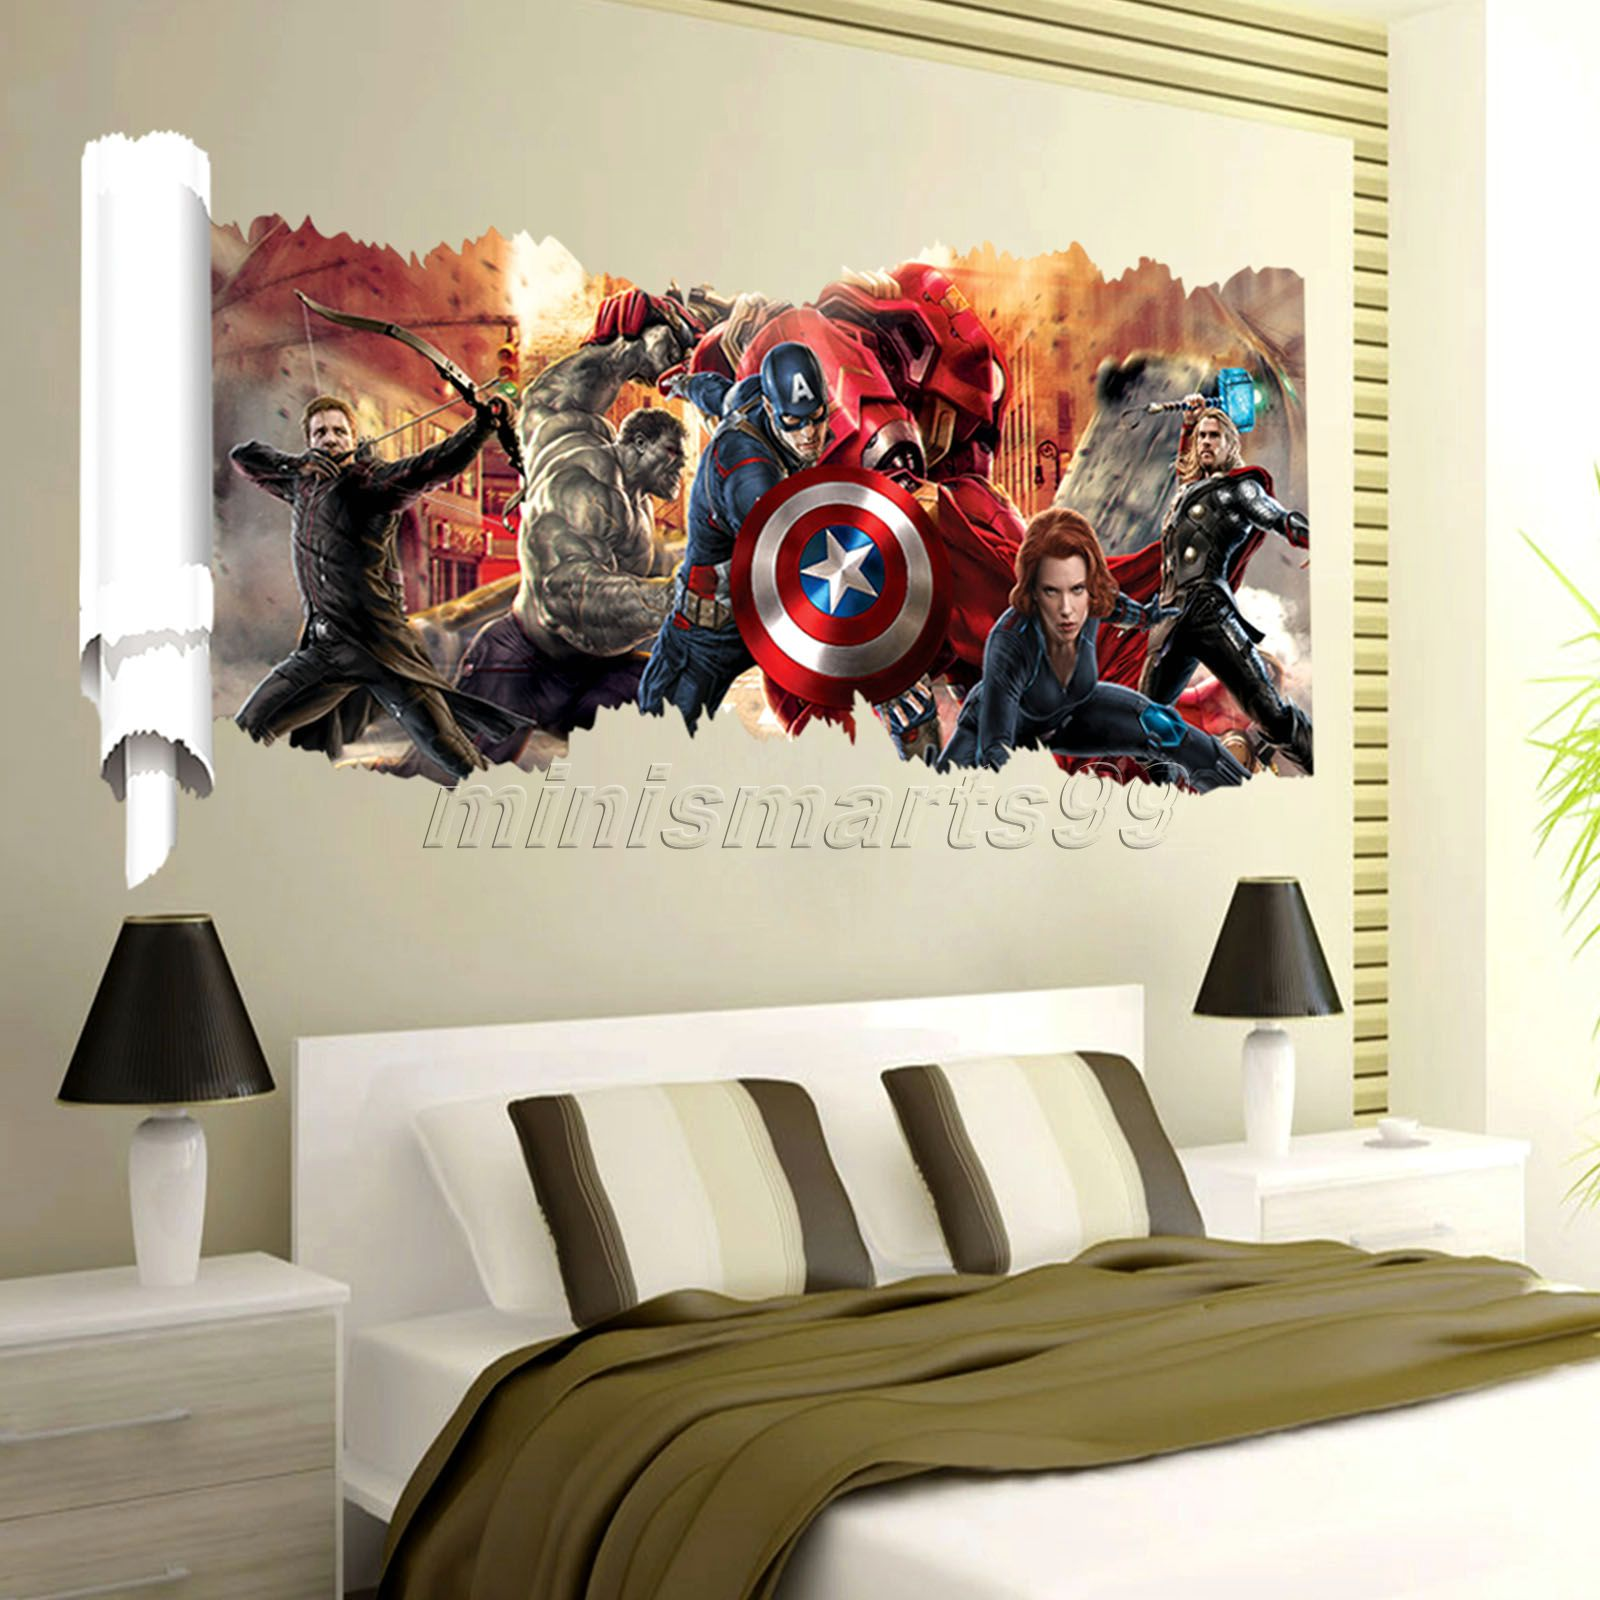 Best Wallpaper Marvel Wall - Marvel-s-The-Avengers-Wall-Sticker-Decals-for-Kids-Room-Home-Decor-Wallpaper-Poster-Nursery-Wall  Pic_31770.jpg